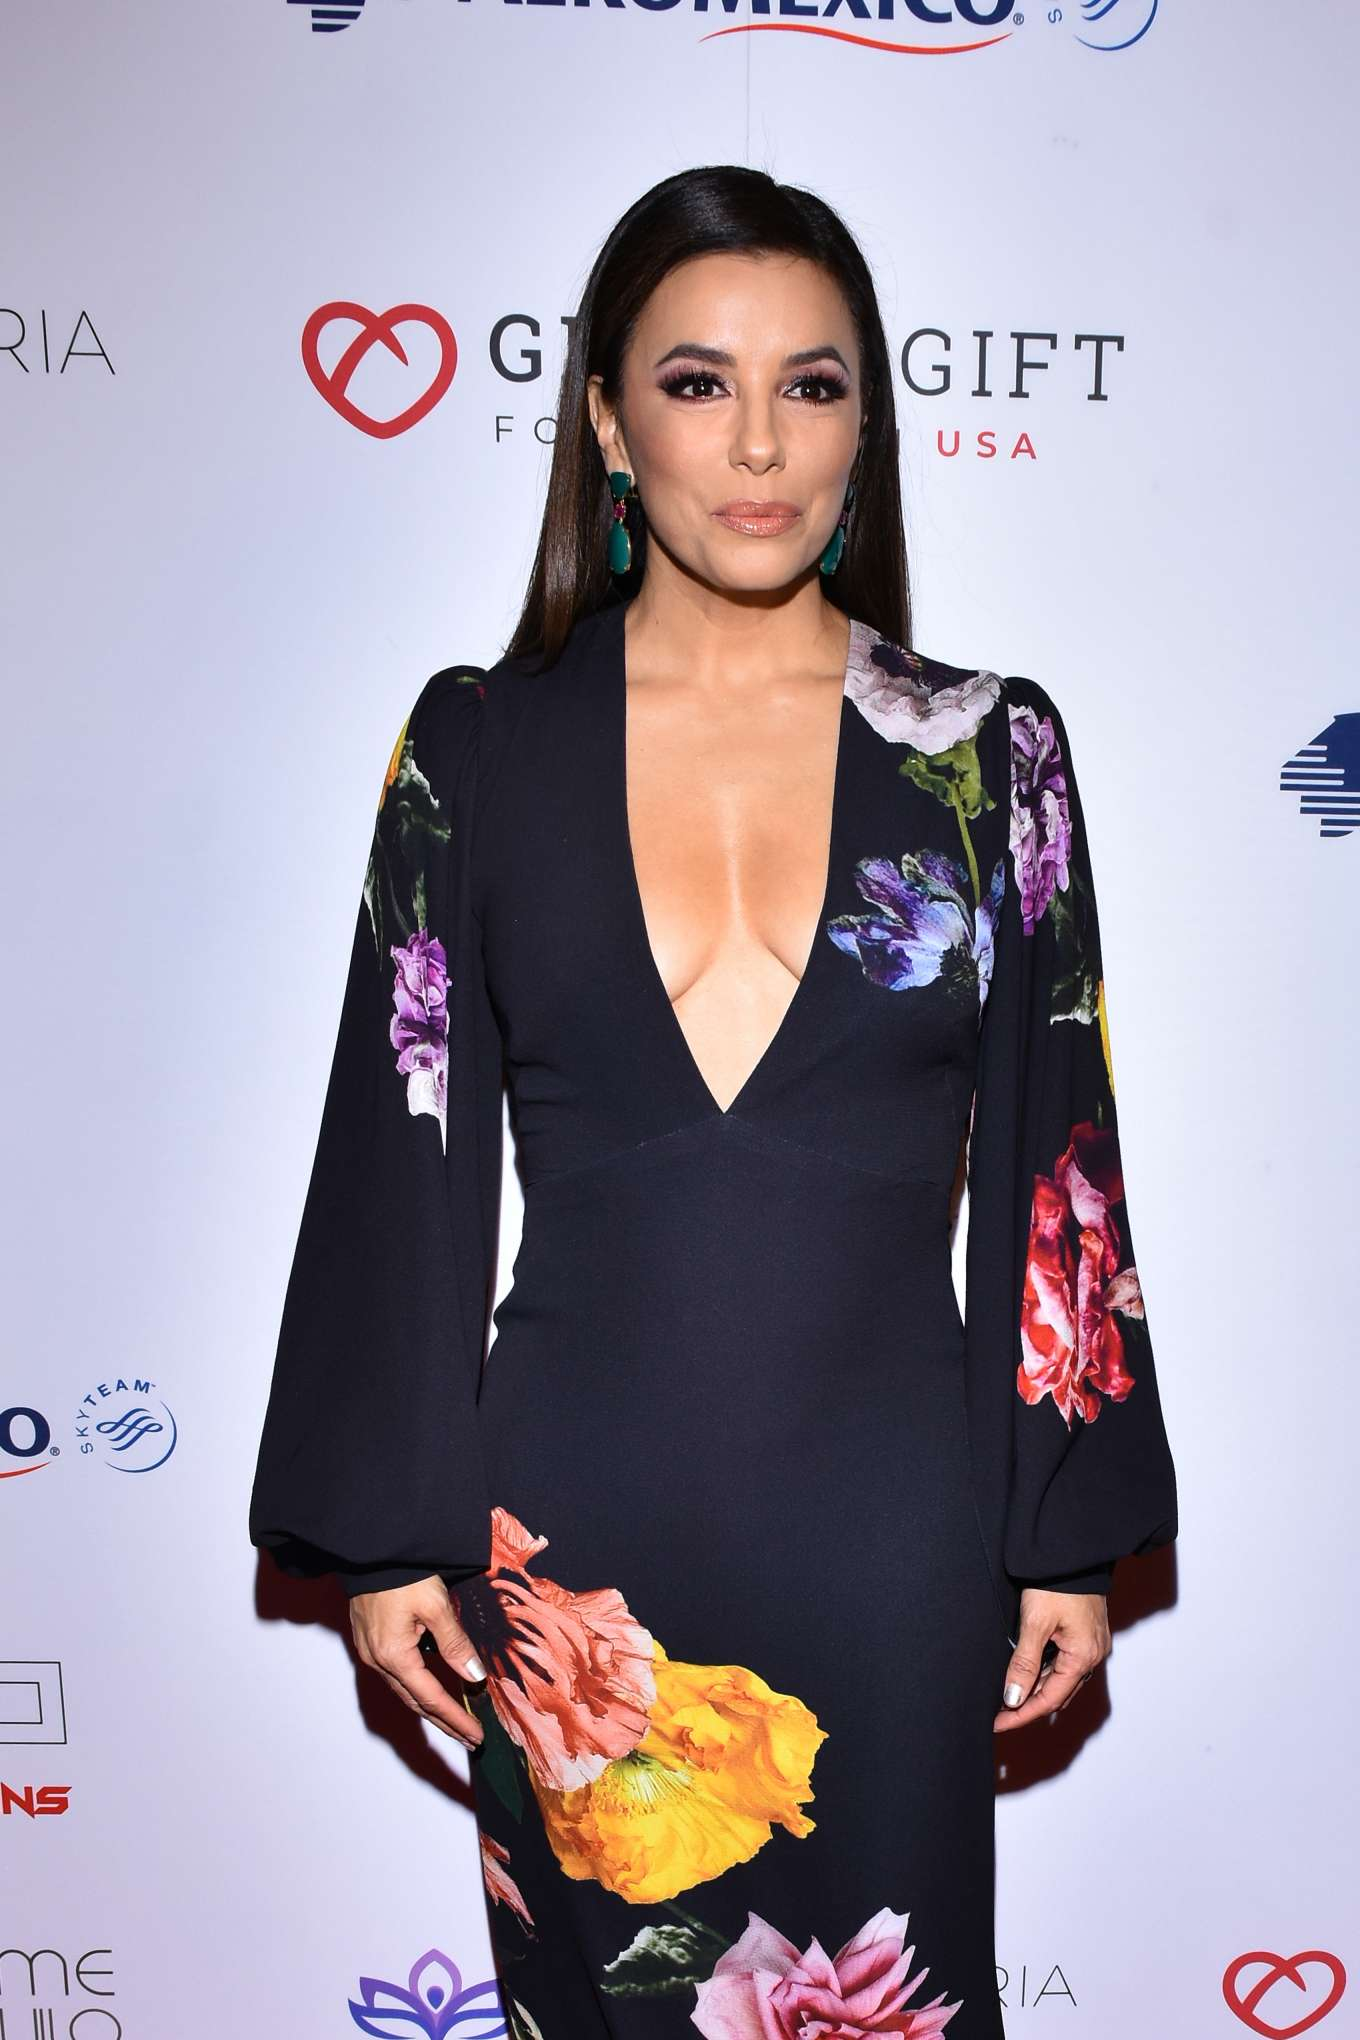 Eva Longoria - 5th Global Gift Foundation USA to the occasion of raising funds in Mexico City